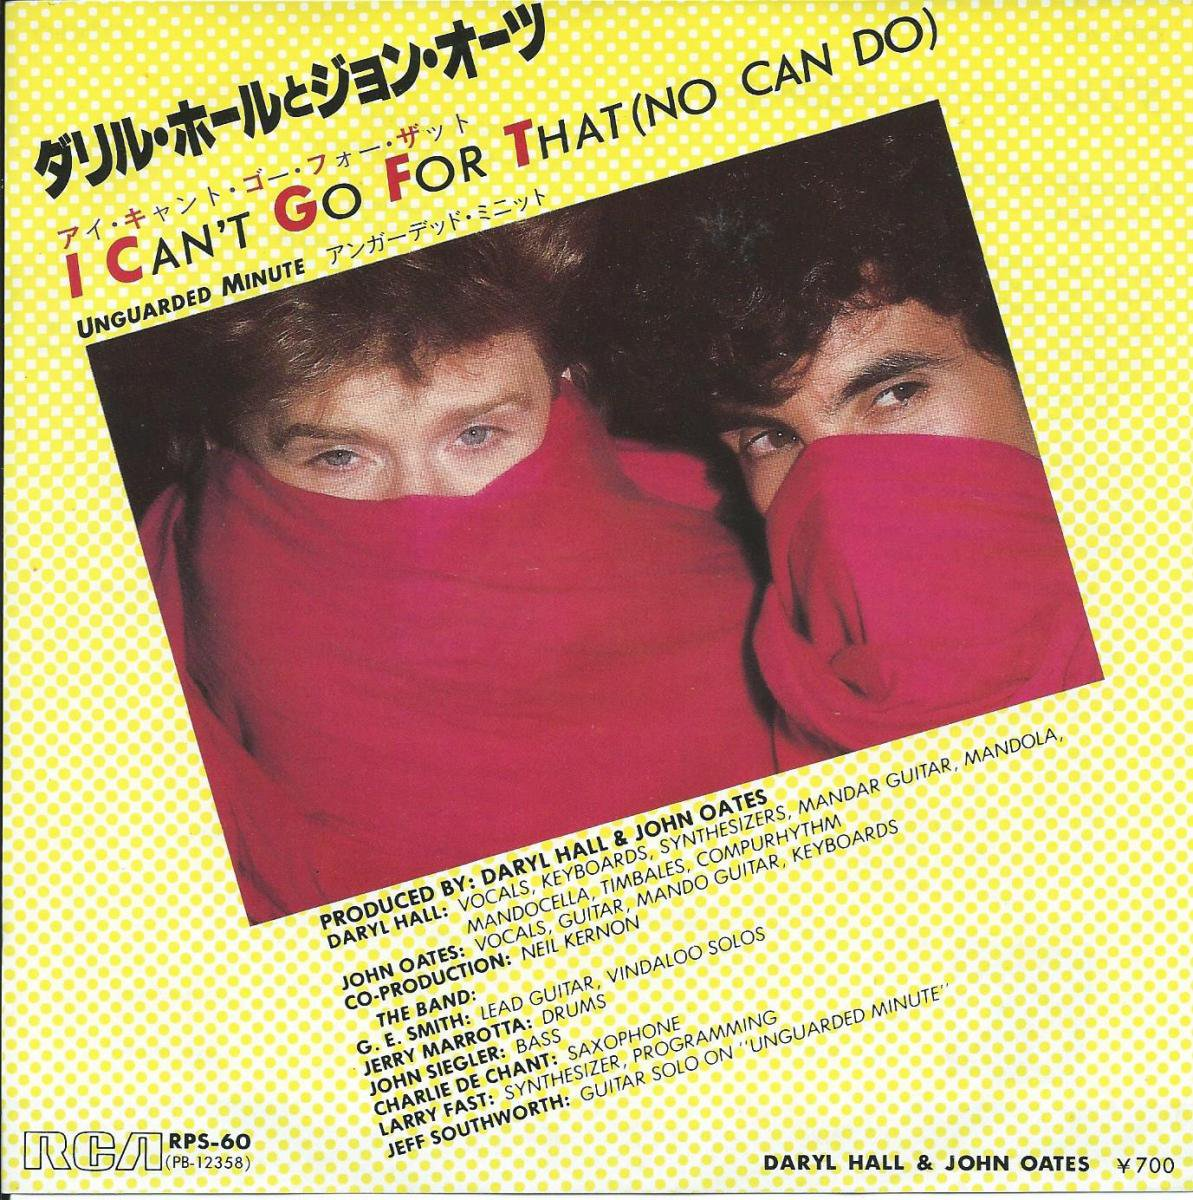 DARYL HALL & JOHN OATES ダリル・ホールとジョン・オーツ / I CAN'T GO FOR THAT ( NO CAN DO)  (7